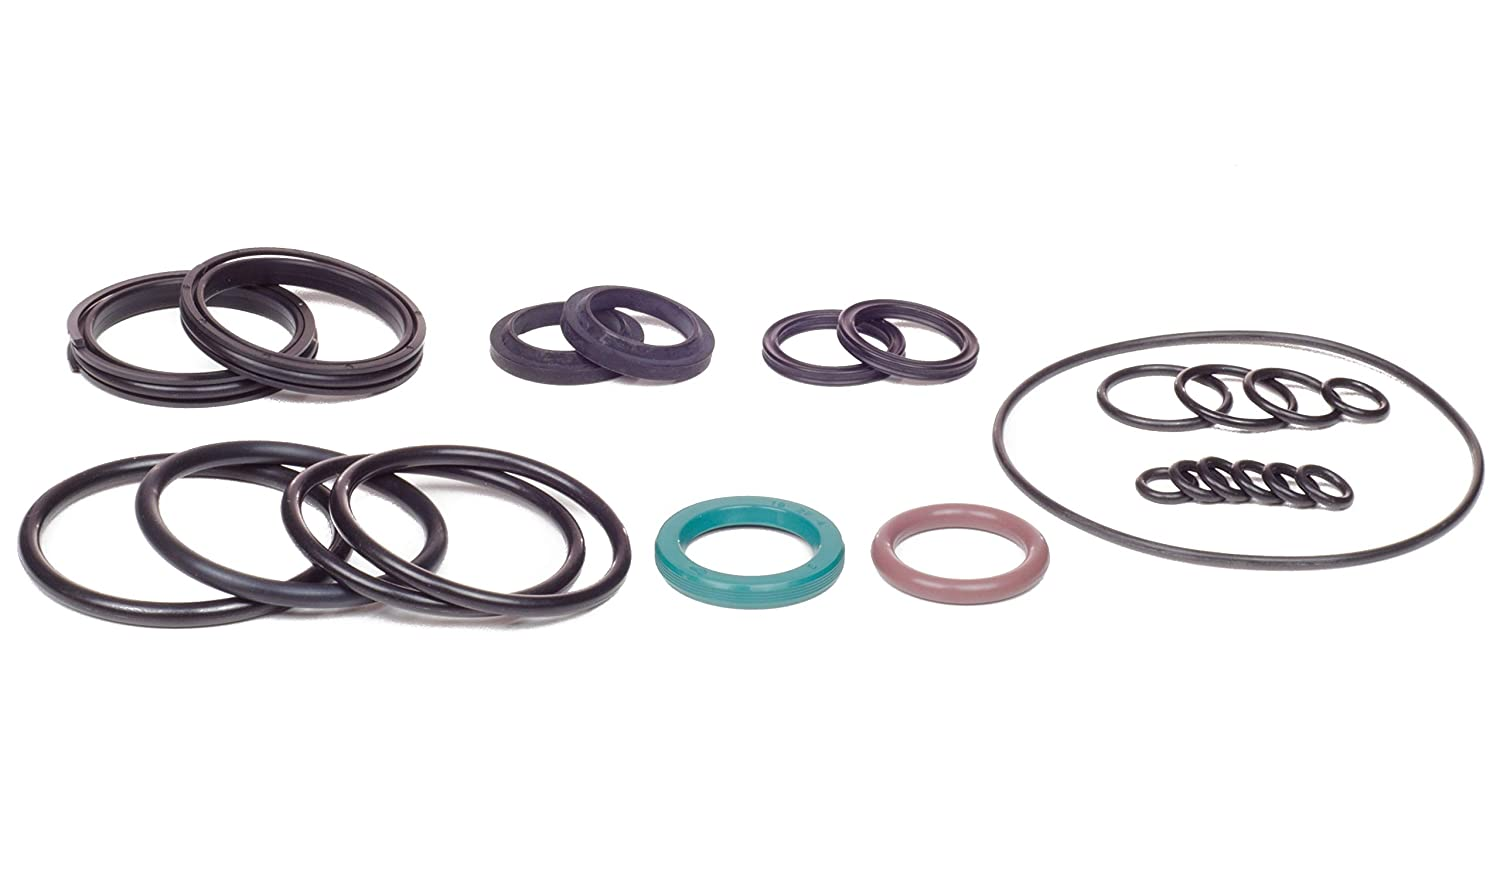 Amazon.com : Evinrude Johnson 434519, 0434519 Trim Tilt Seal ... on